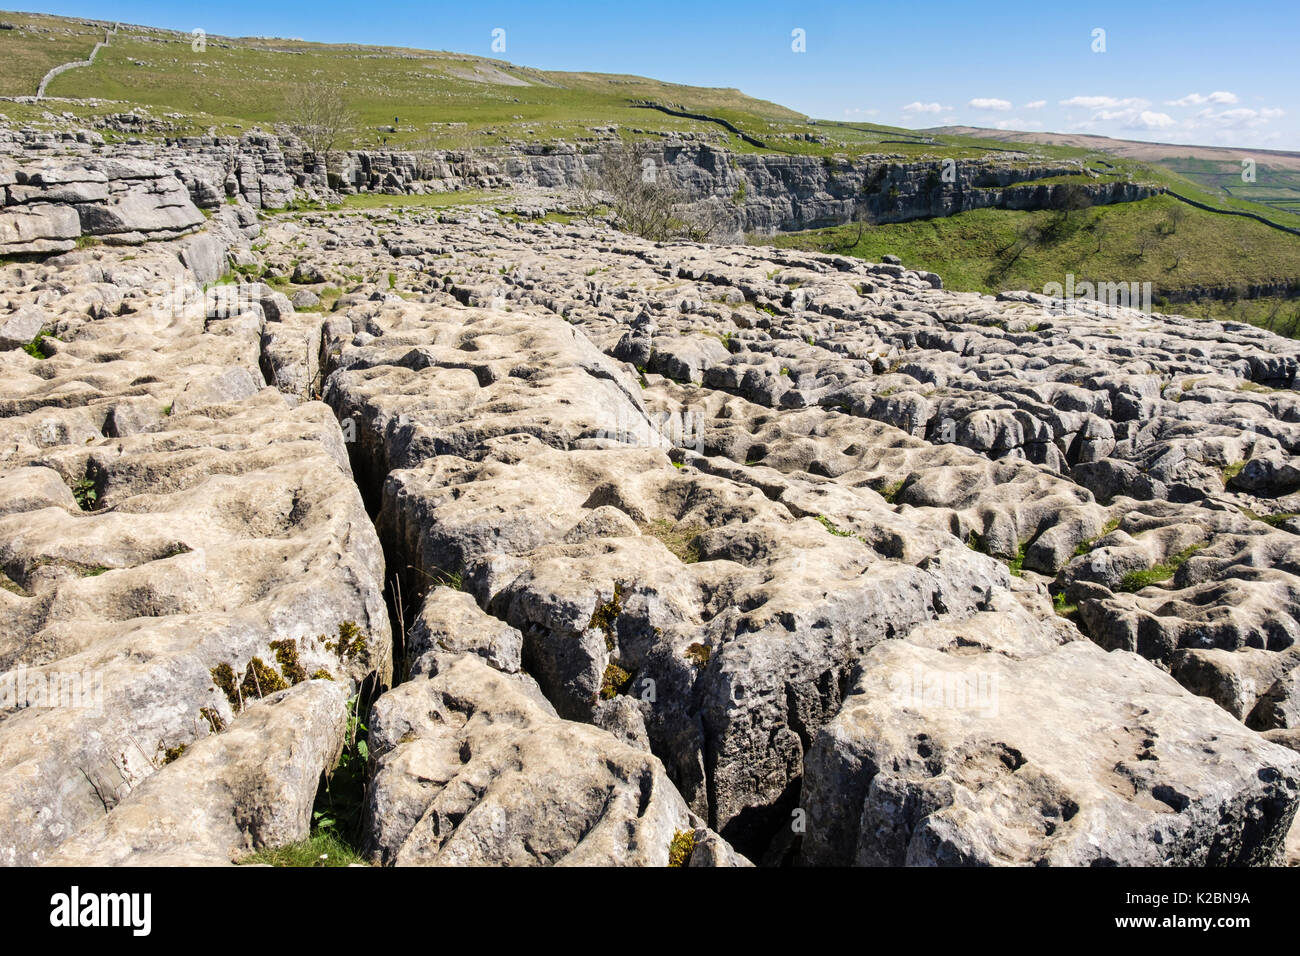 Clints and grikes in the limestone pavement at top of Malham Cove. Malham, Malhamdale, Yorkshire Dales National Park, North Yorkshire, England, UK - Stock Image